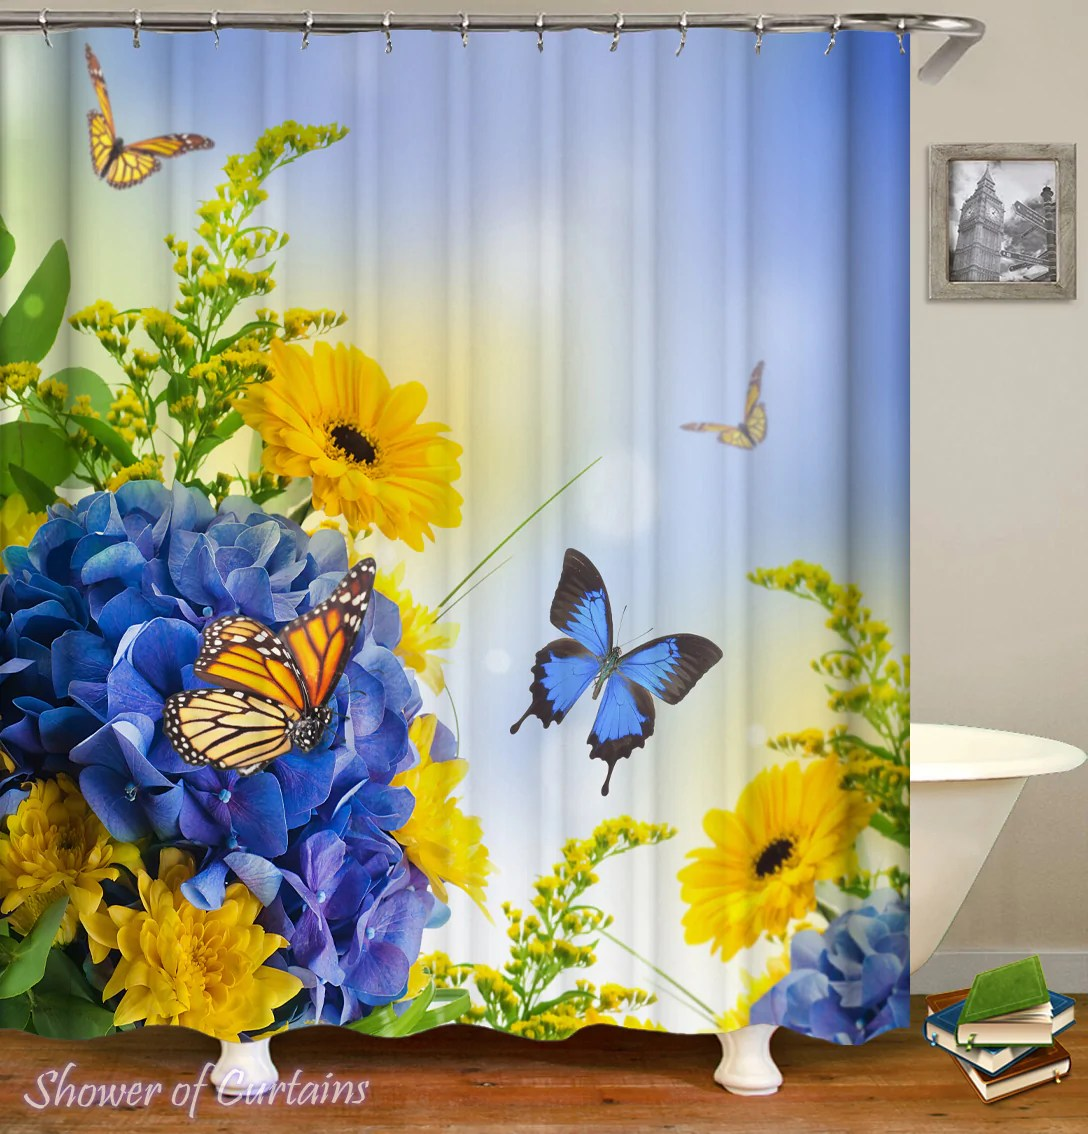 blue and yellow flowers ft butterflies